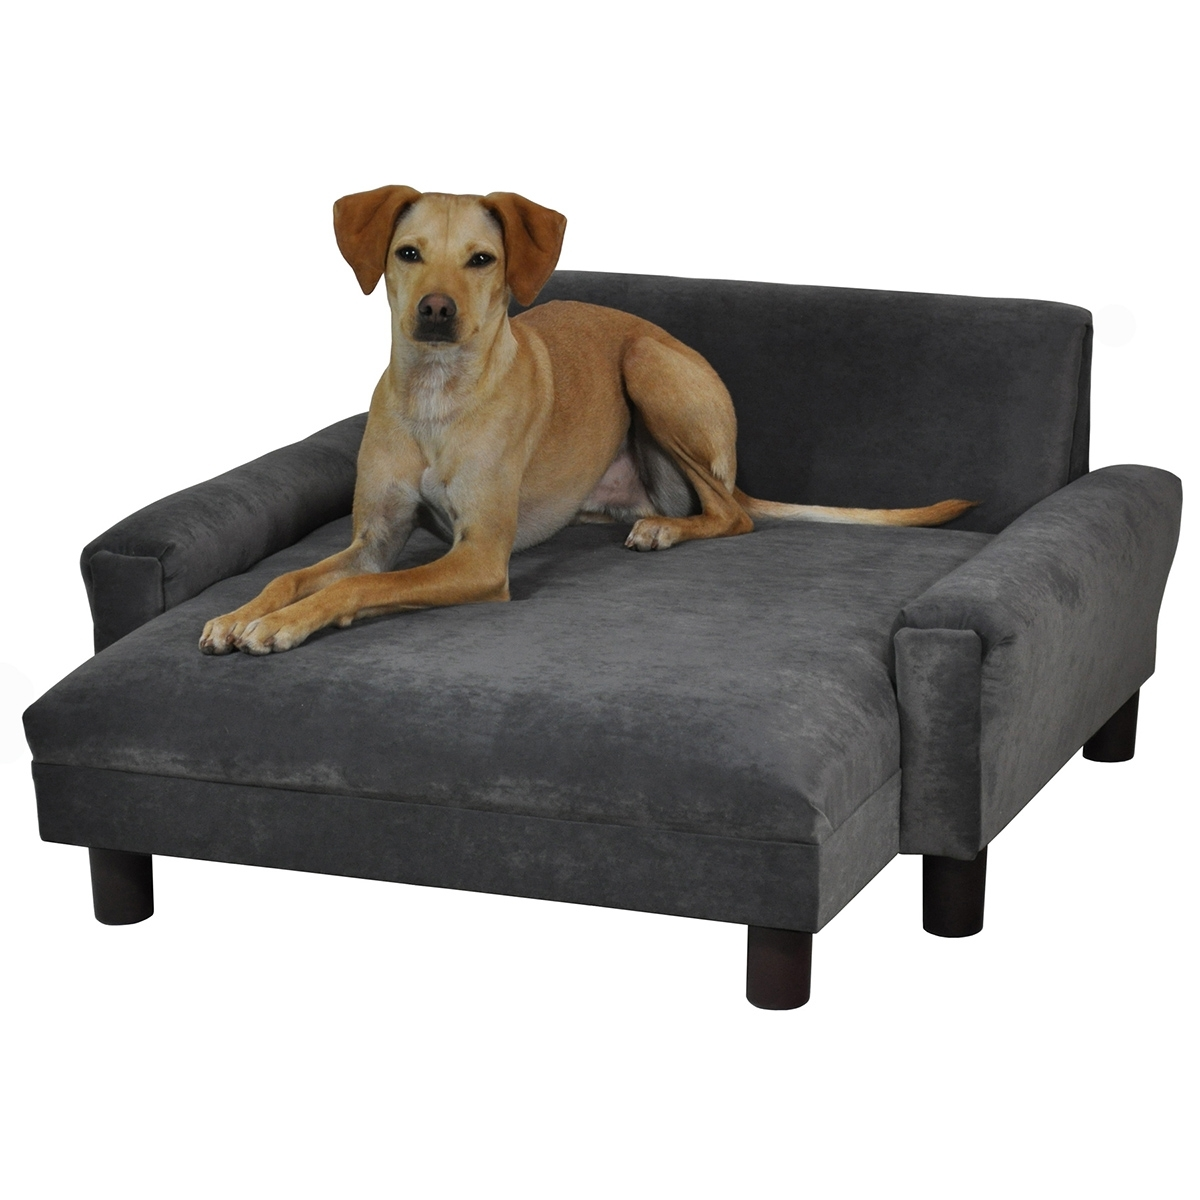 Dog Chaise Lounges With Regard To 2017 Modern Dog Chaise Lounge (View 5 of 15)